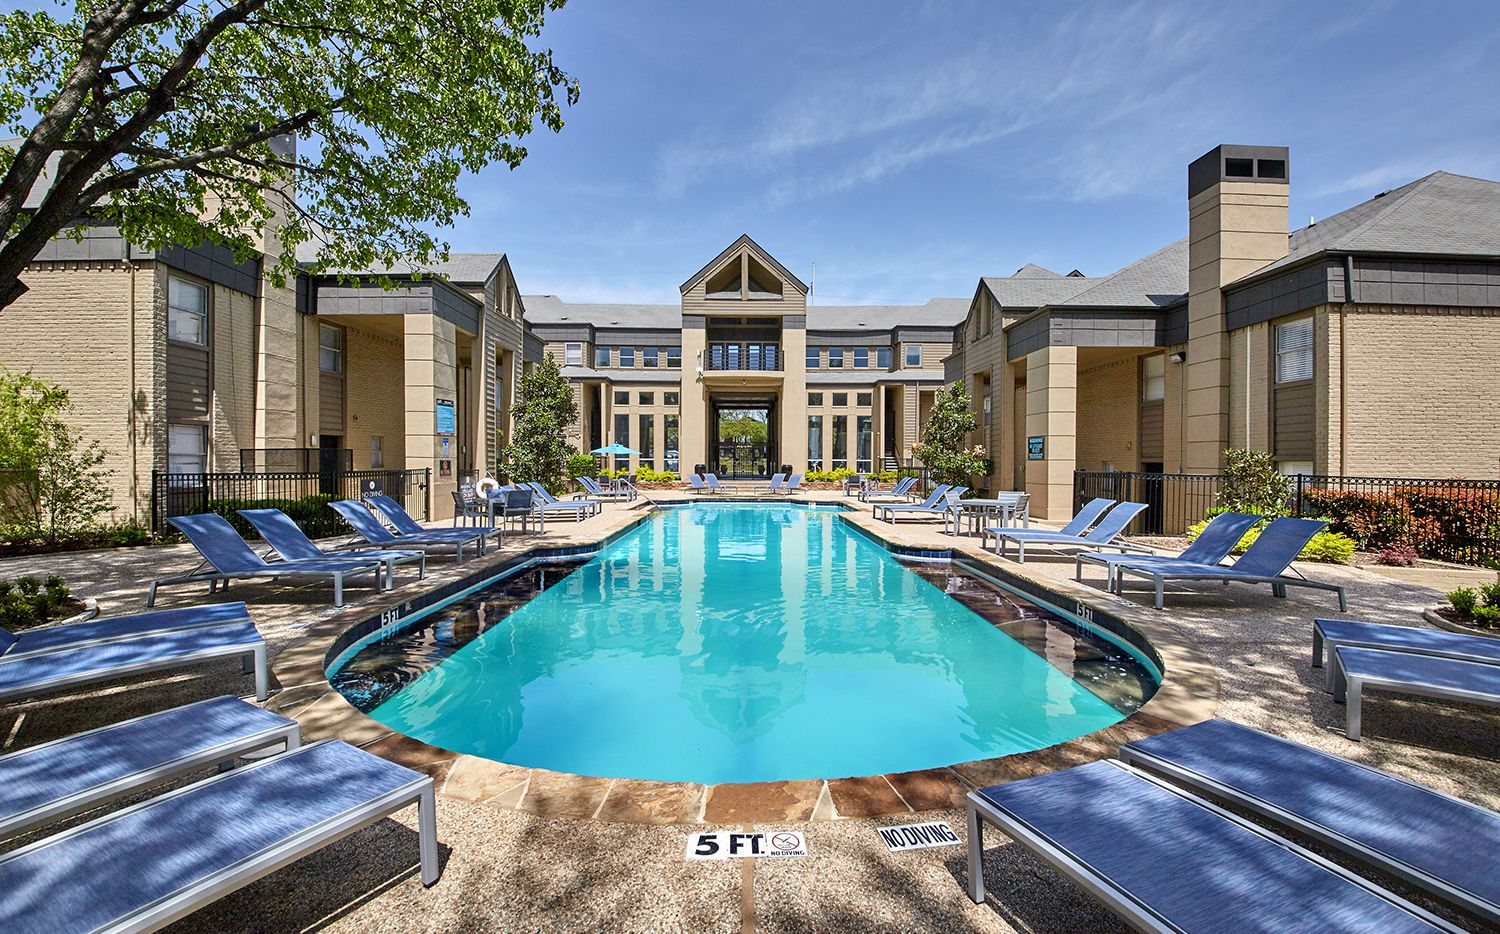 The Park NinetySix 90 apartments in Northeast Dallas sold to a California investor.